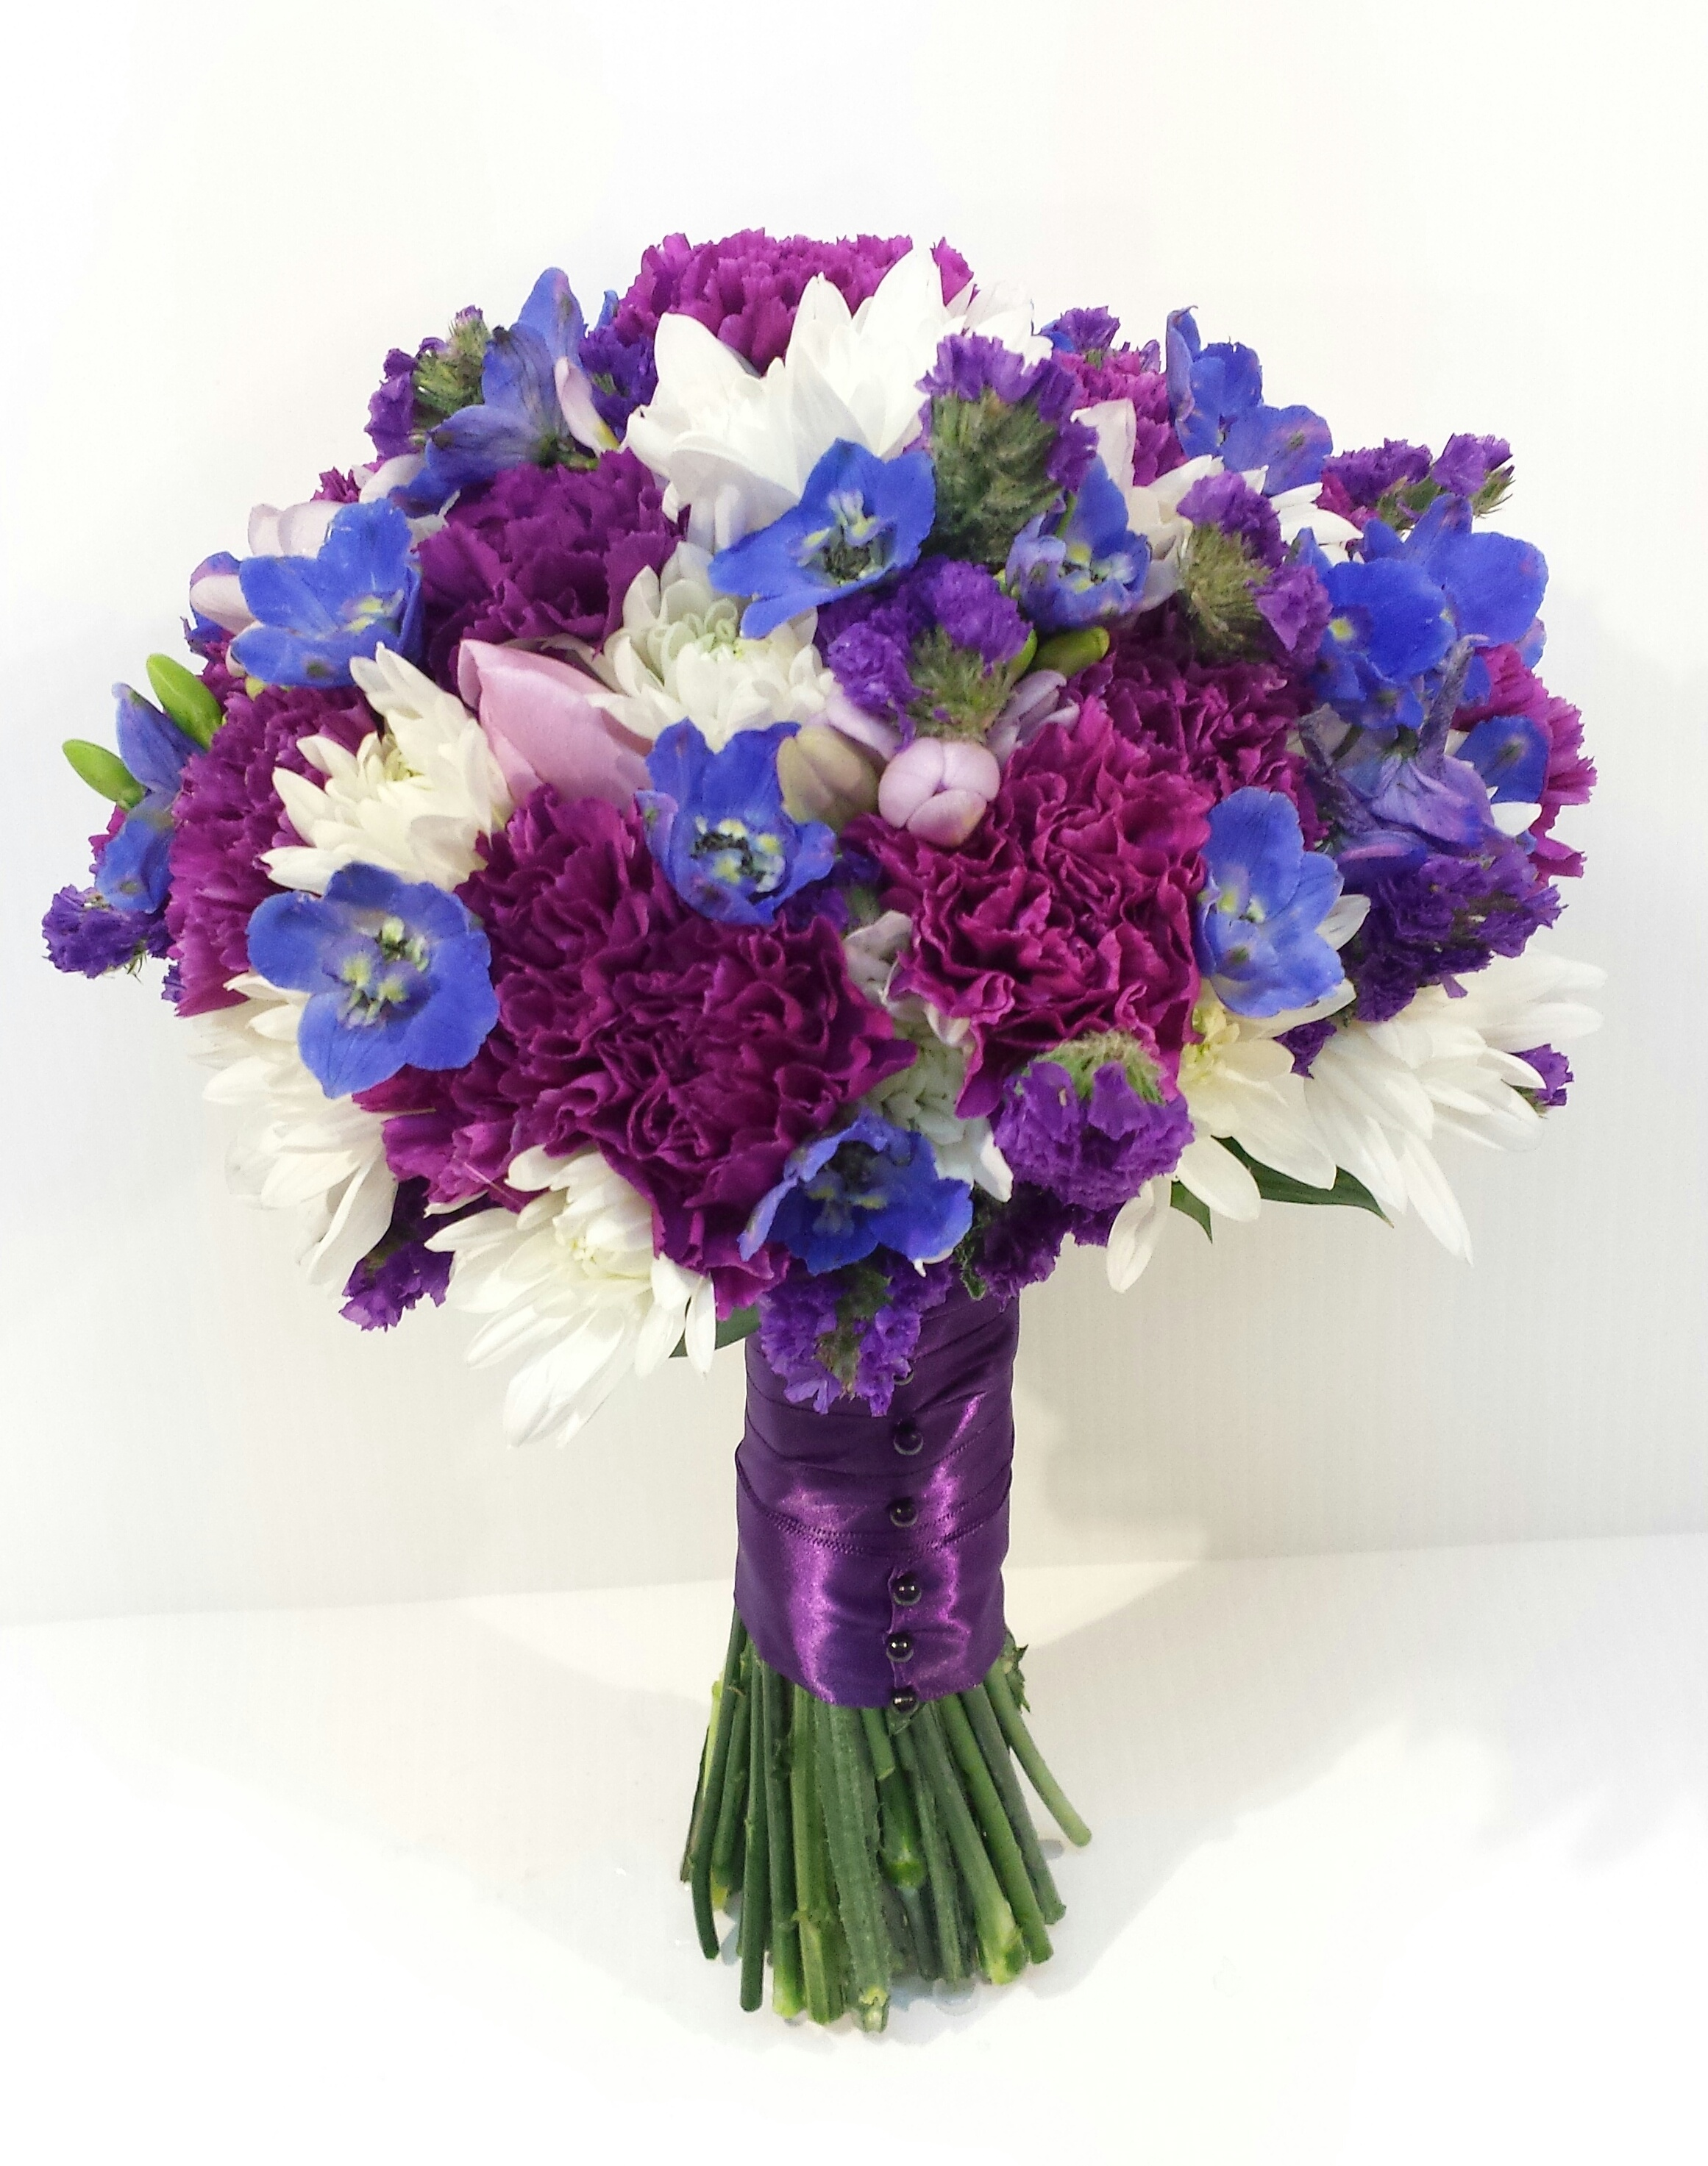 calgary wedding flowers florist dahlia floral design review testimonial recommendation compliments happy real couple